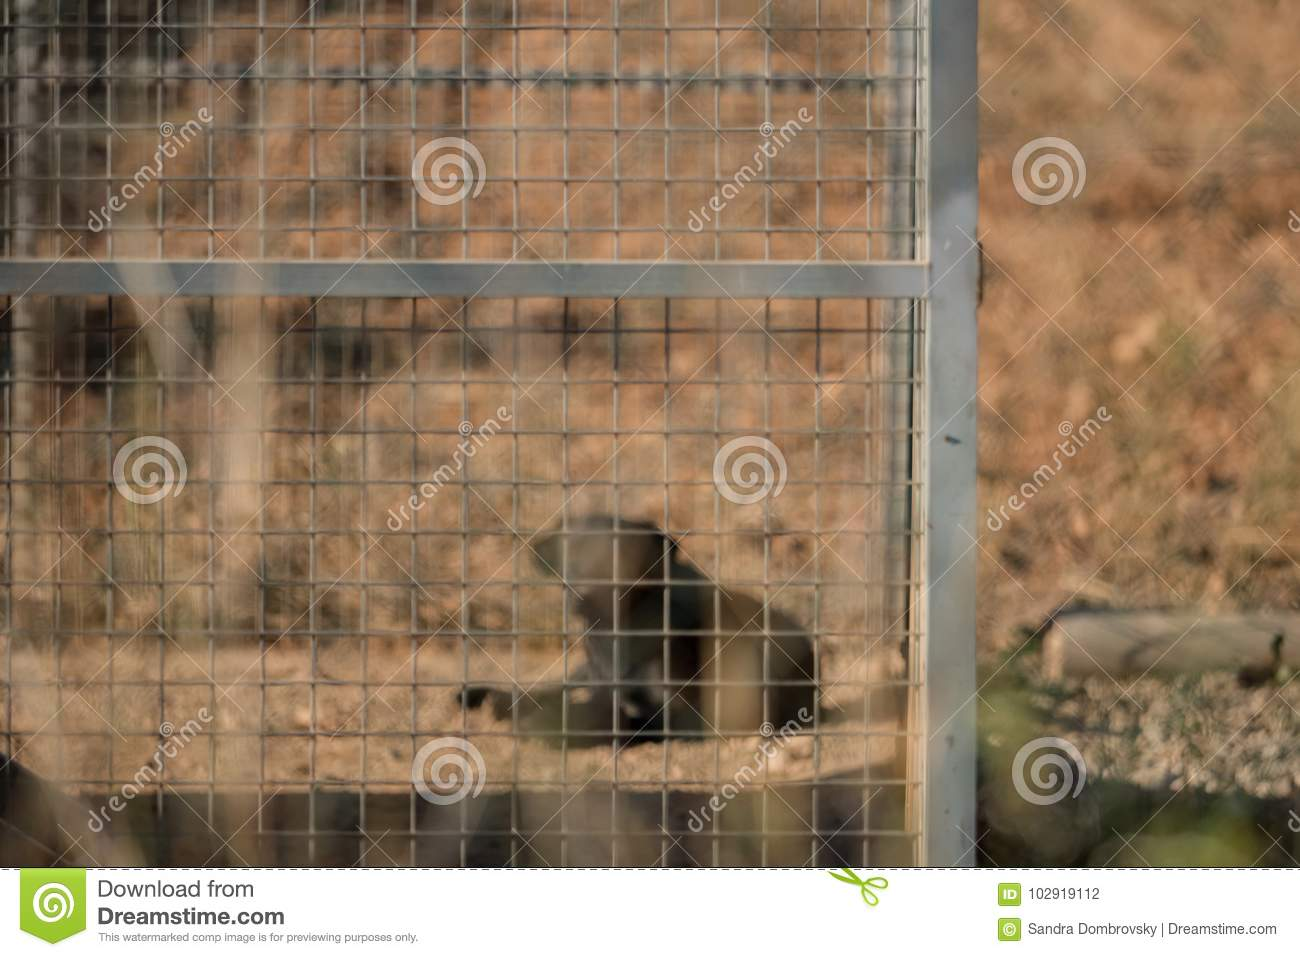 Black dog in the kennel